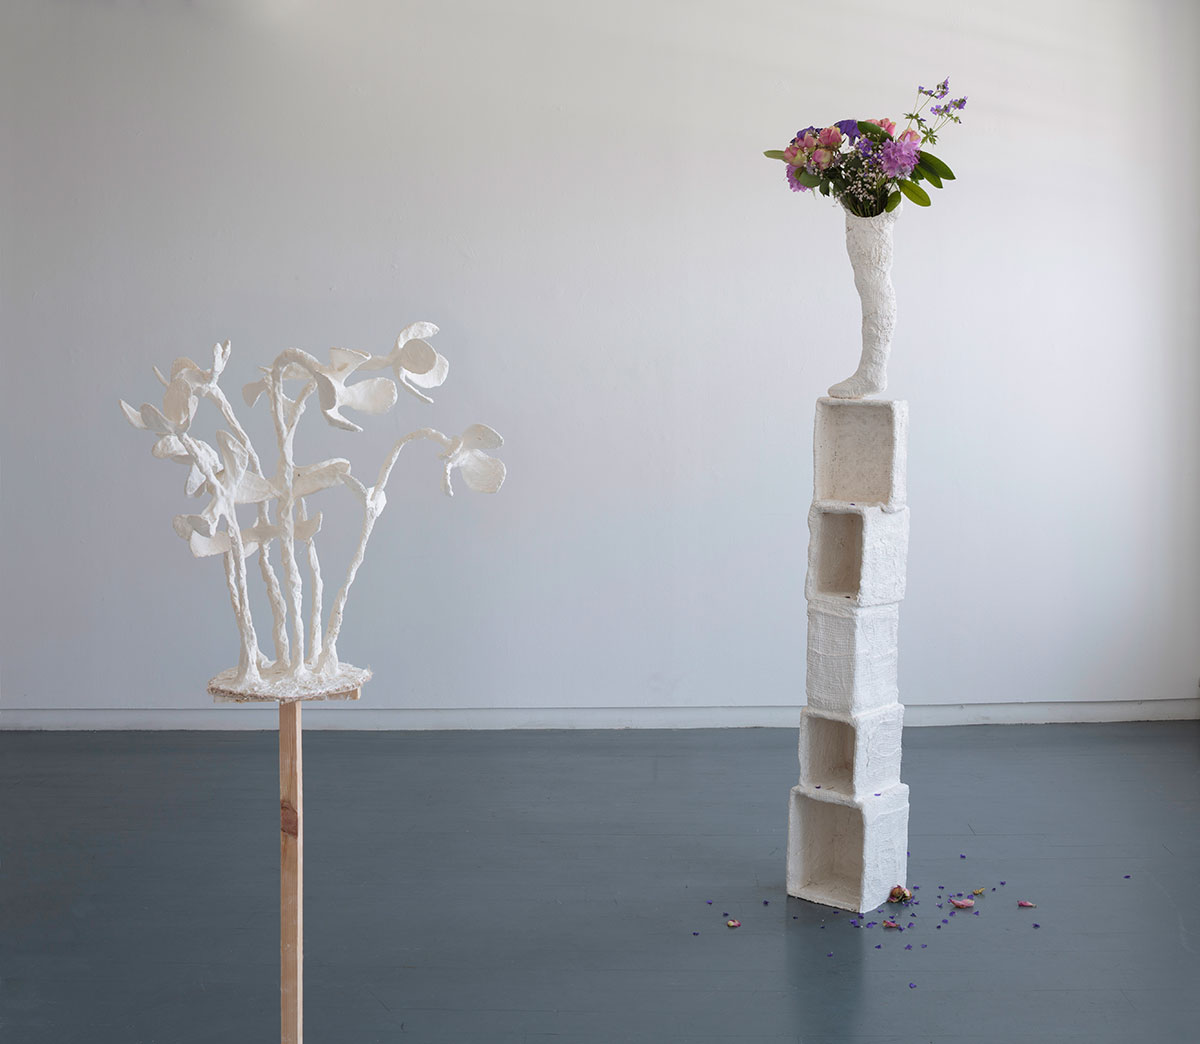 The Language of Flowers, Glasgow Project Room, 2018